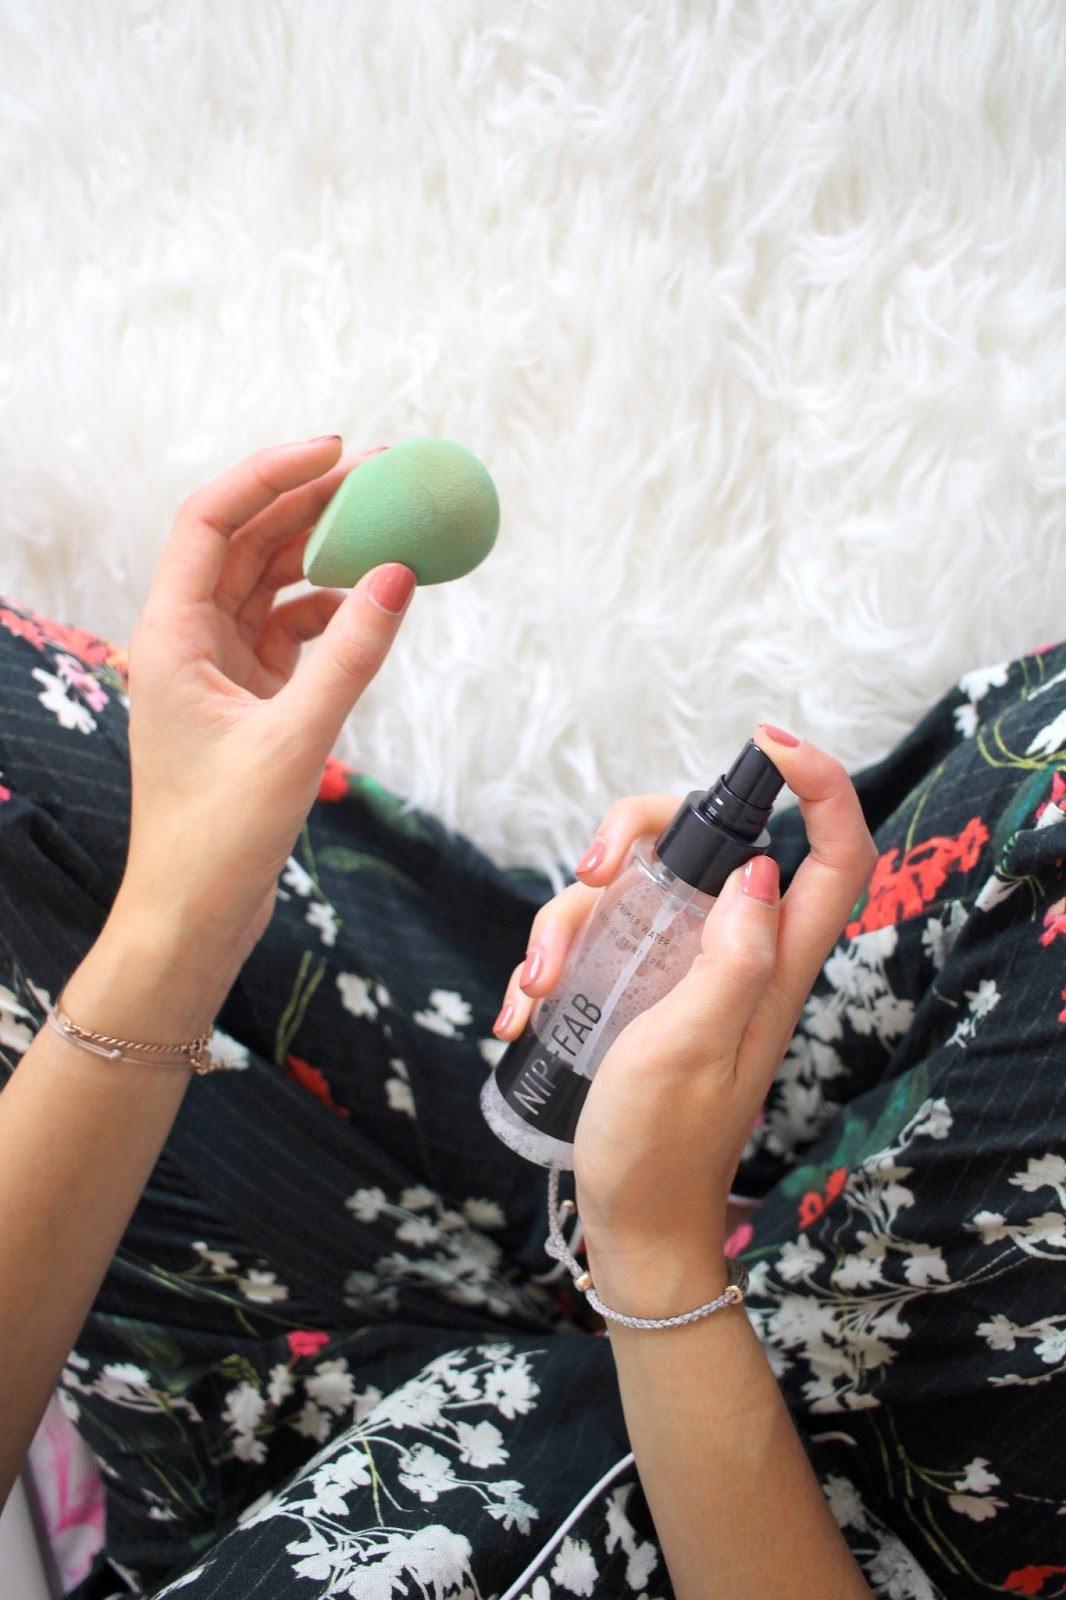 beauty sponge hacks peexo blogger